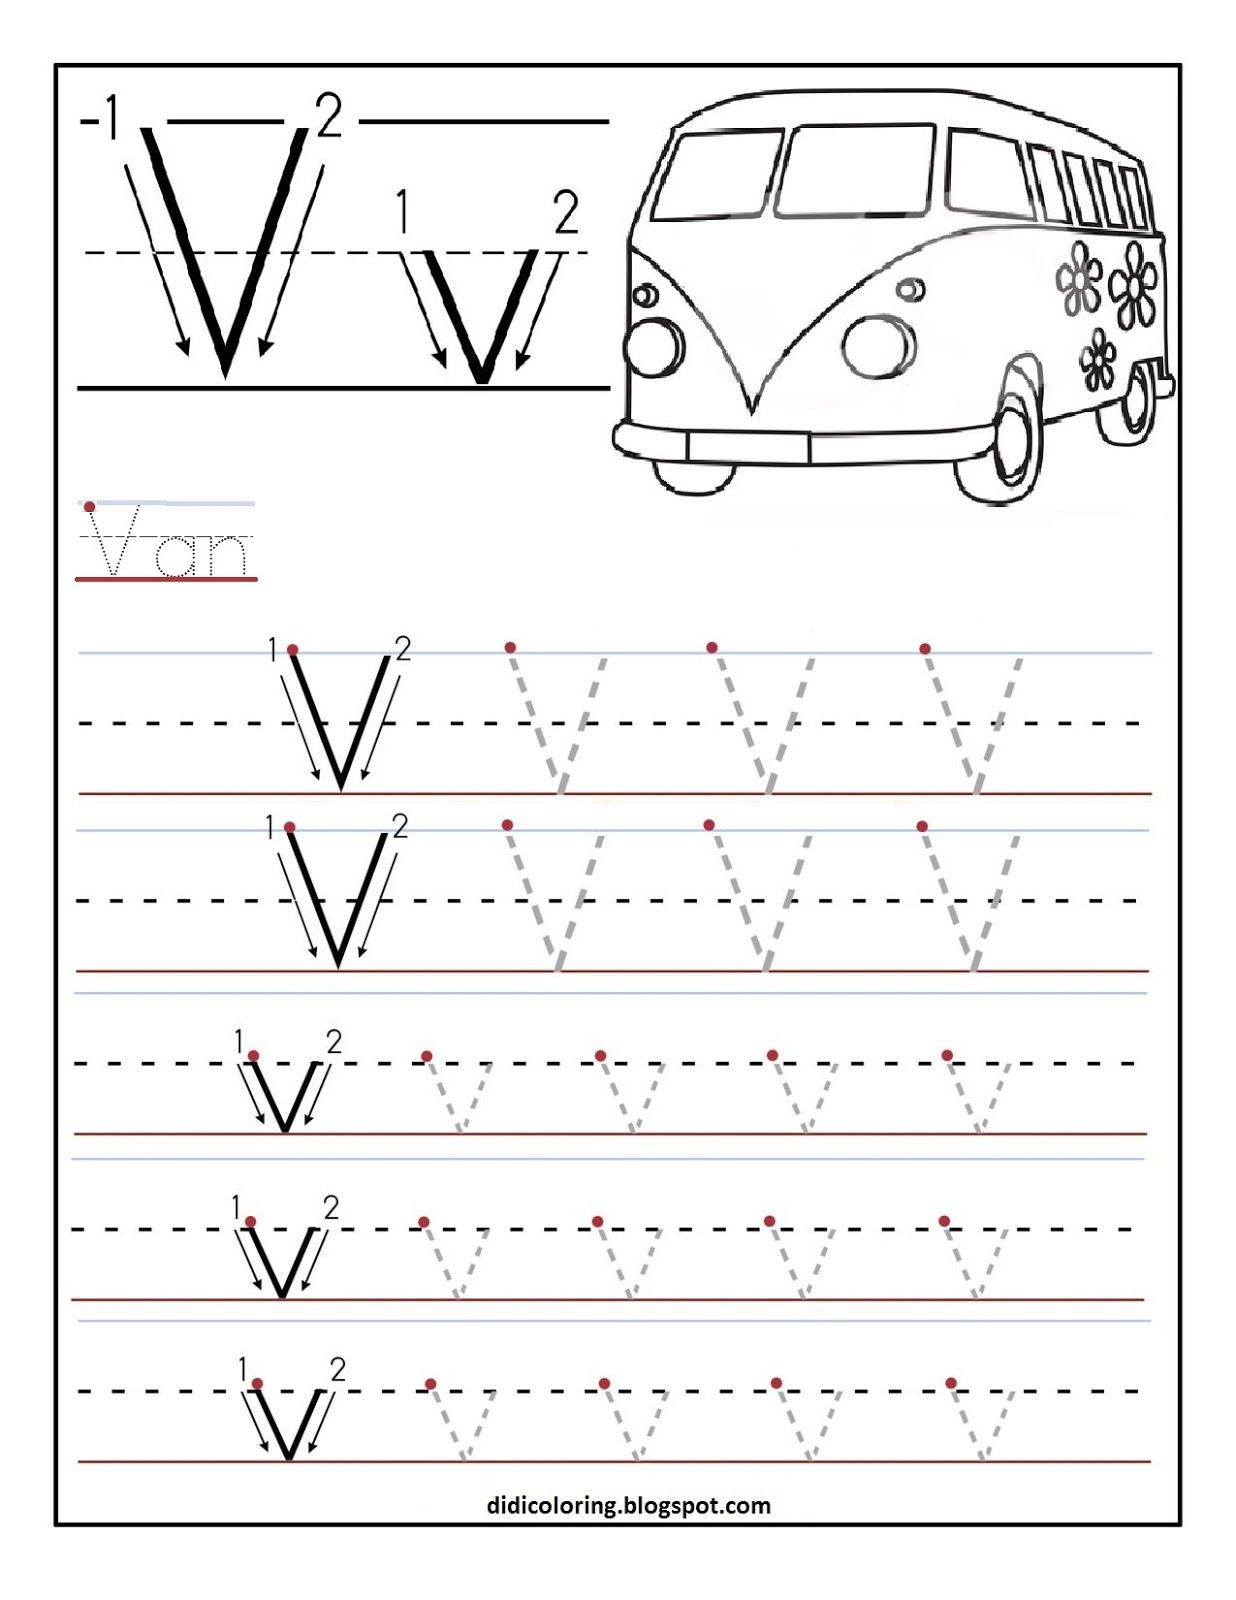 Tracing Letter V Worksheets